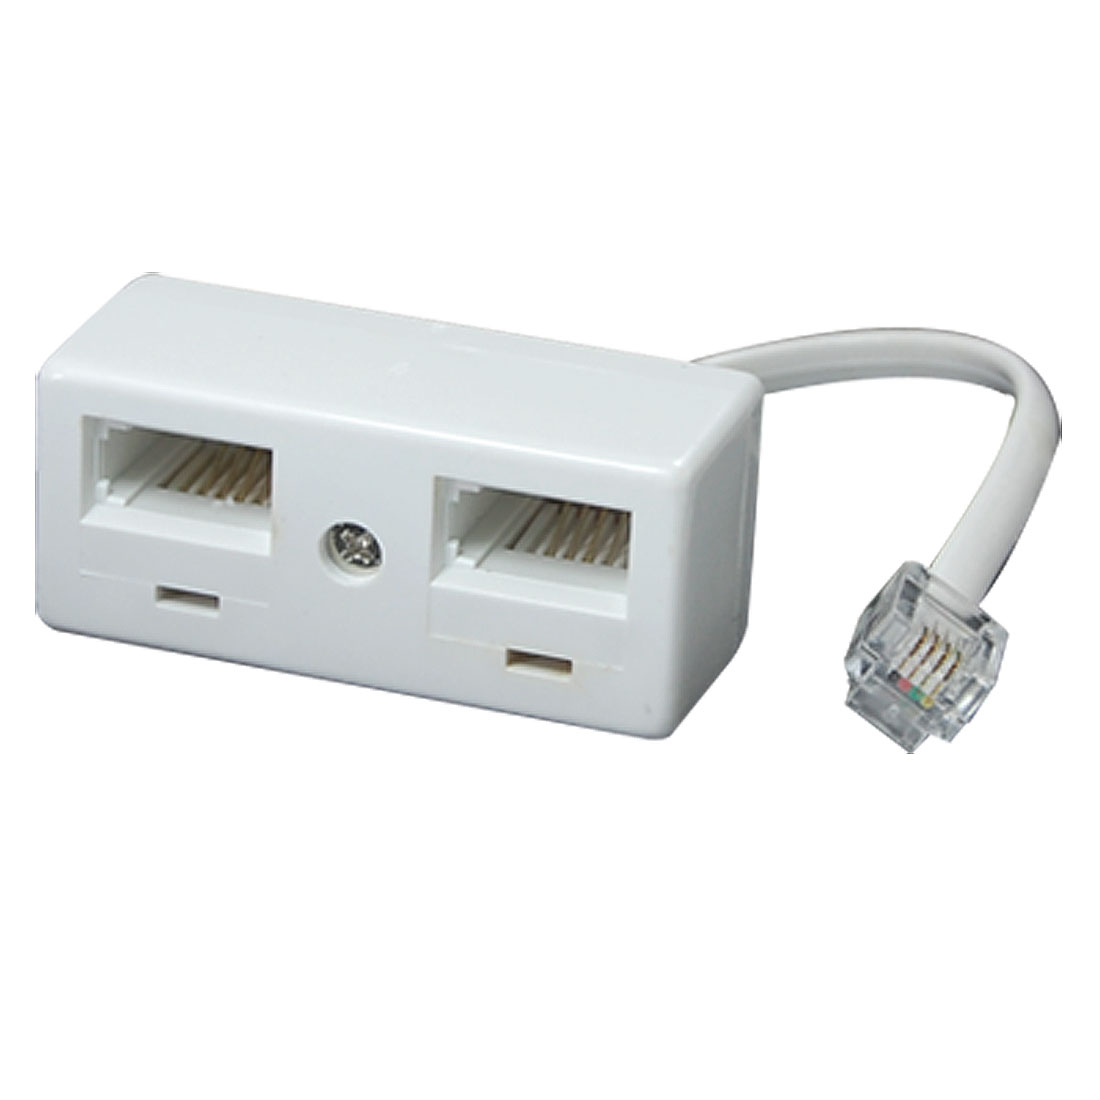 Male RJ11 to Dual UK BT Socket Telephone Adapter